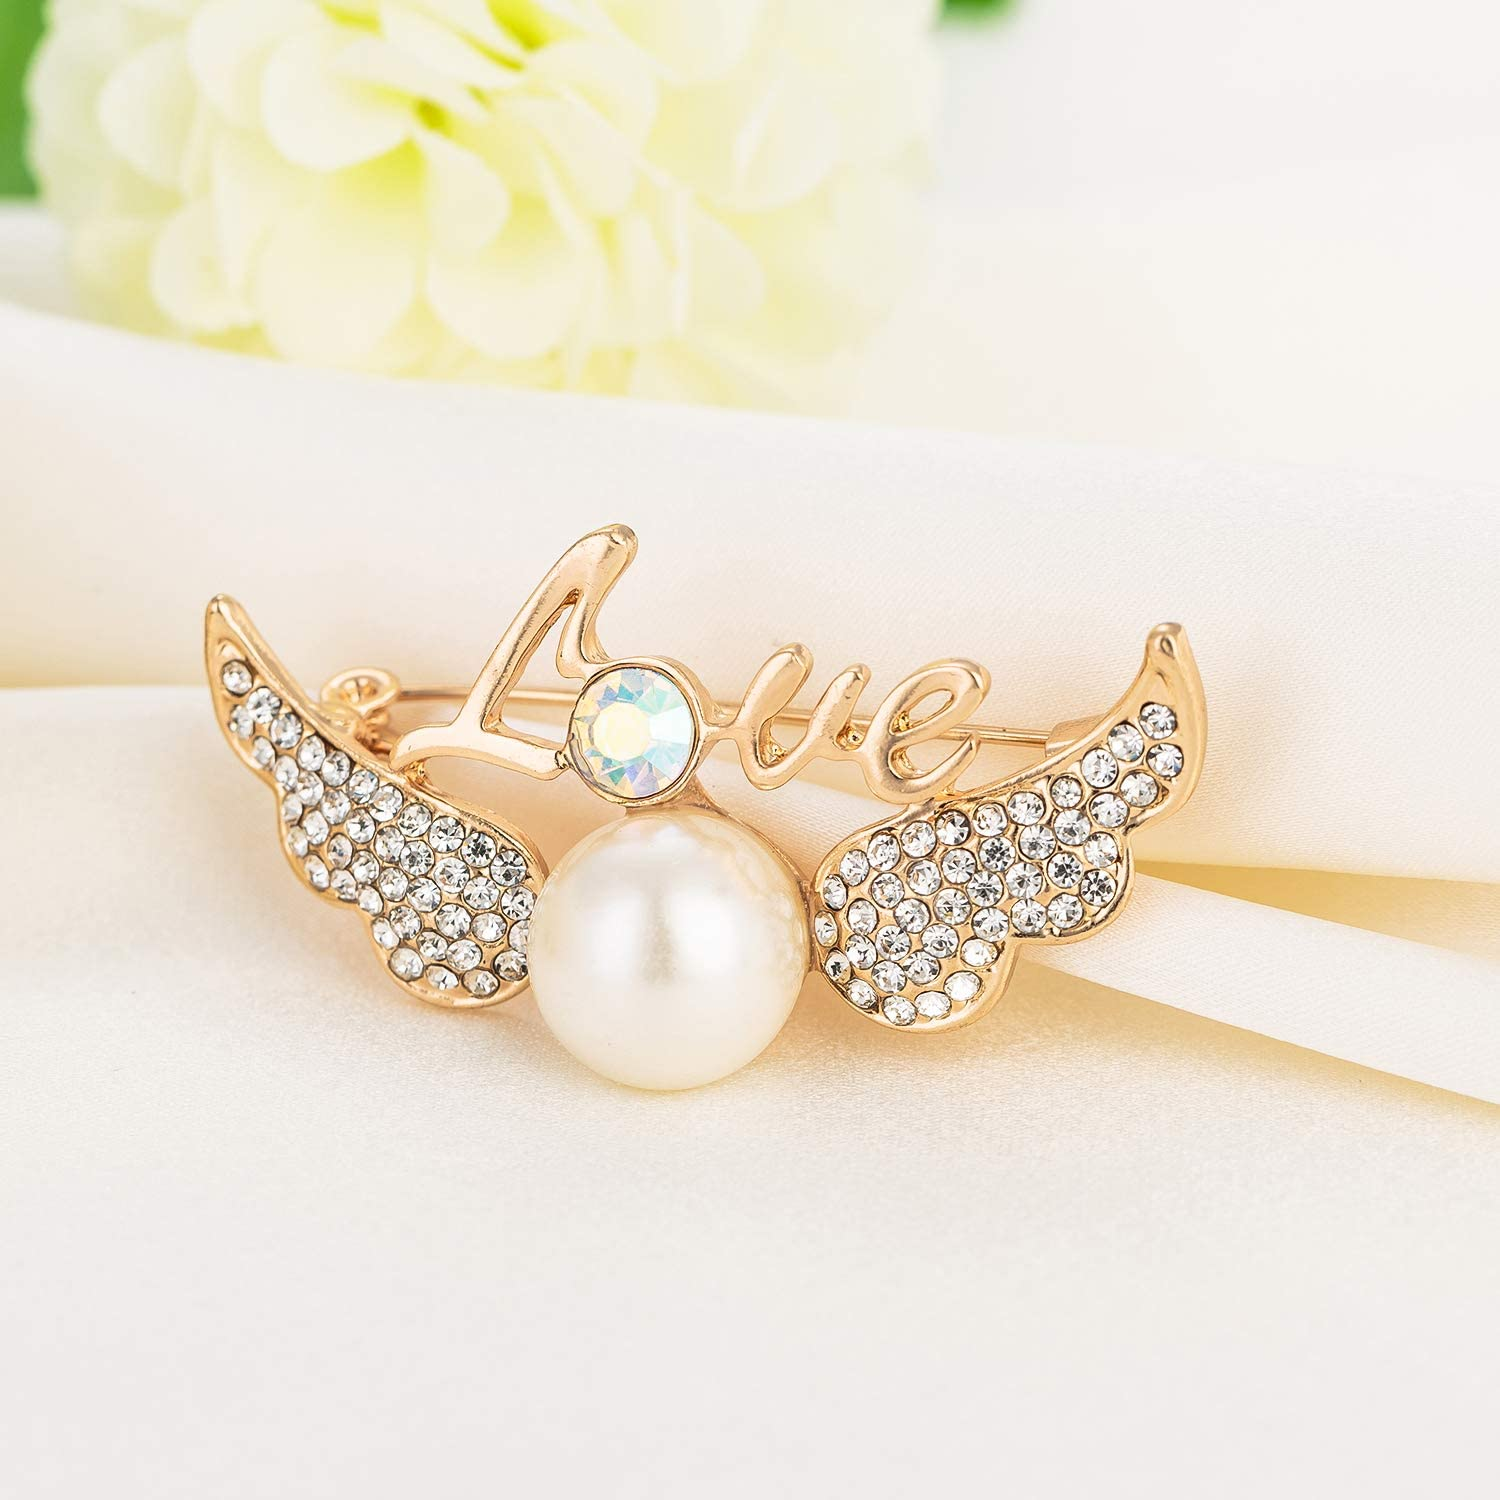 Aimelo Angel Wings with love Brooch Pin for Women Girls